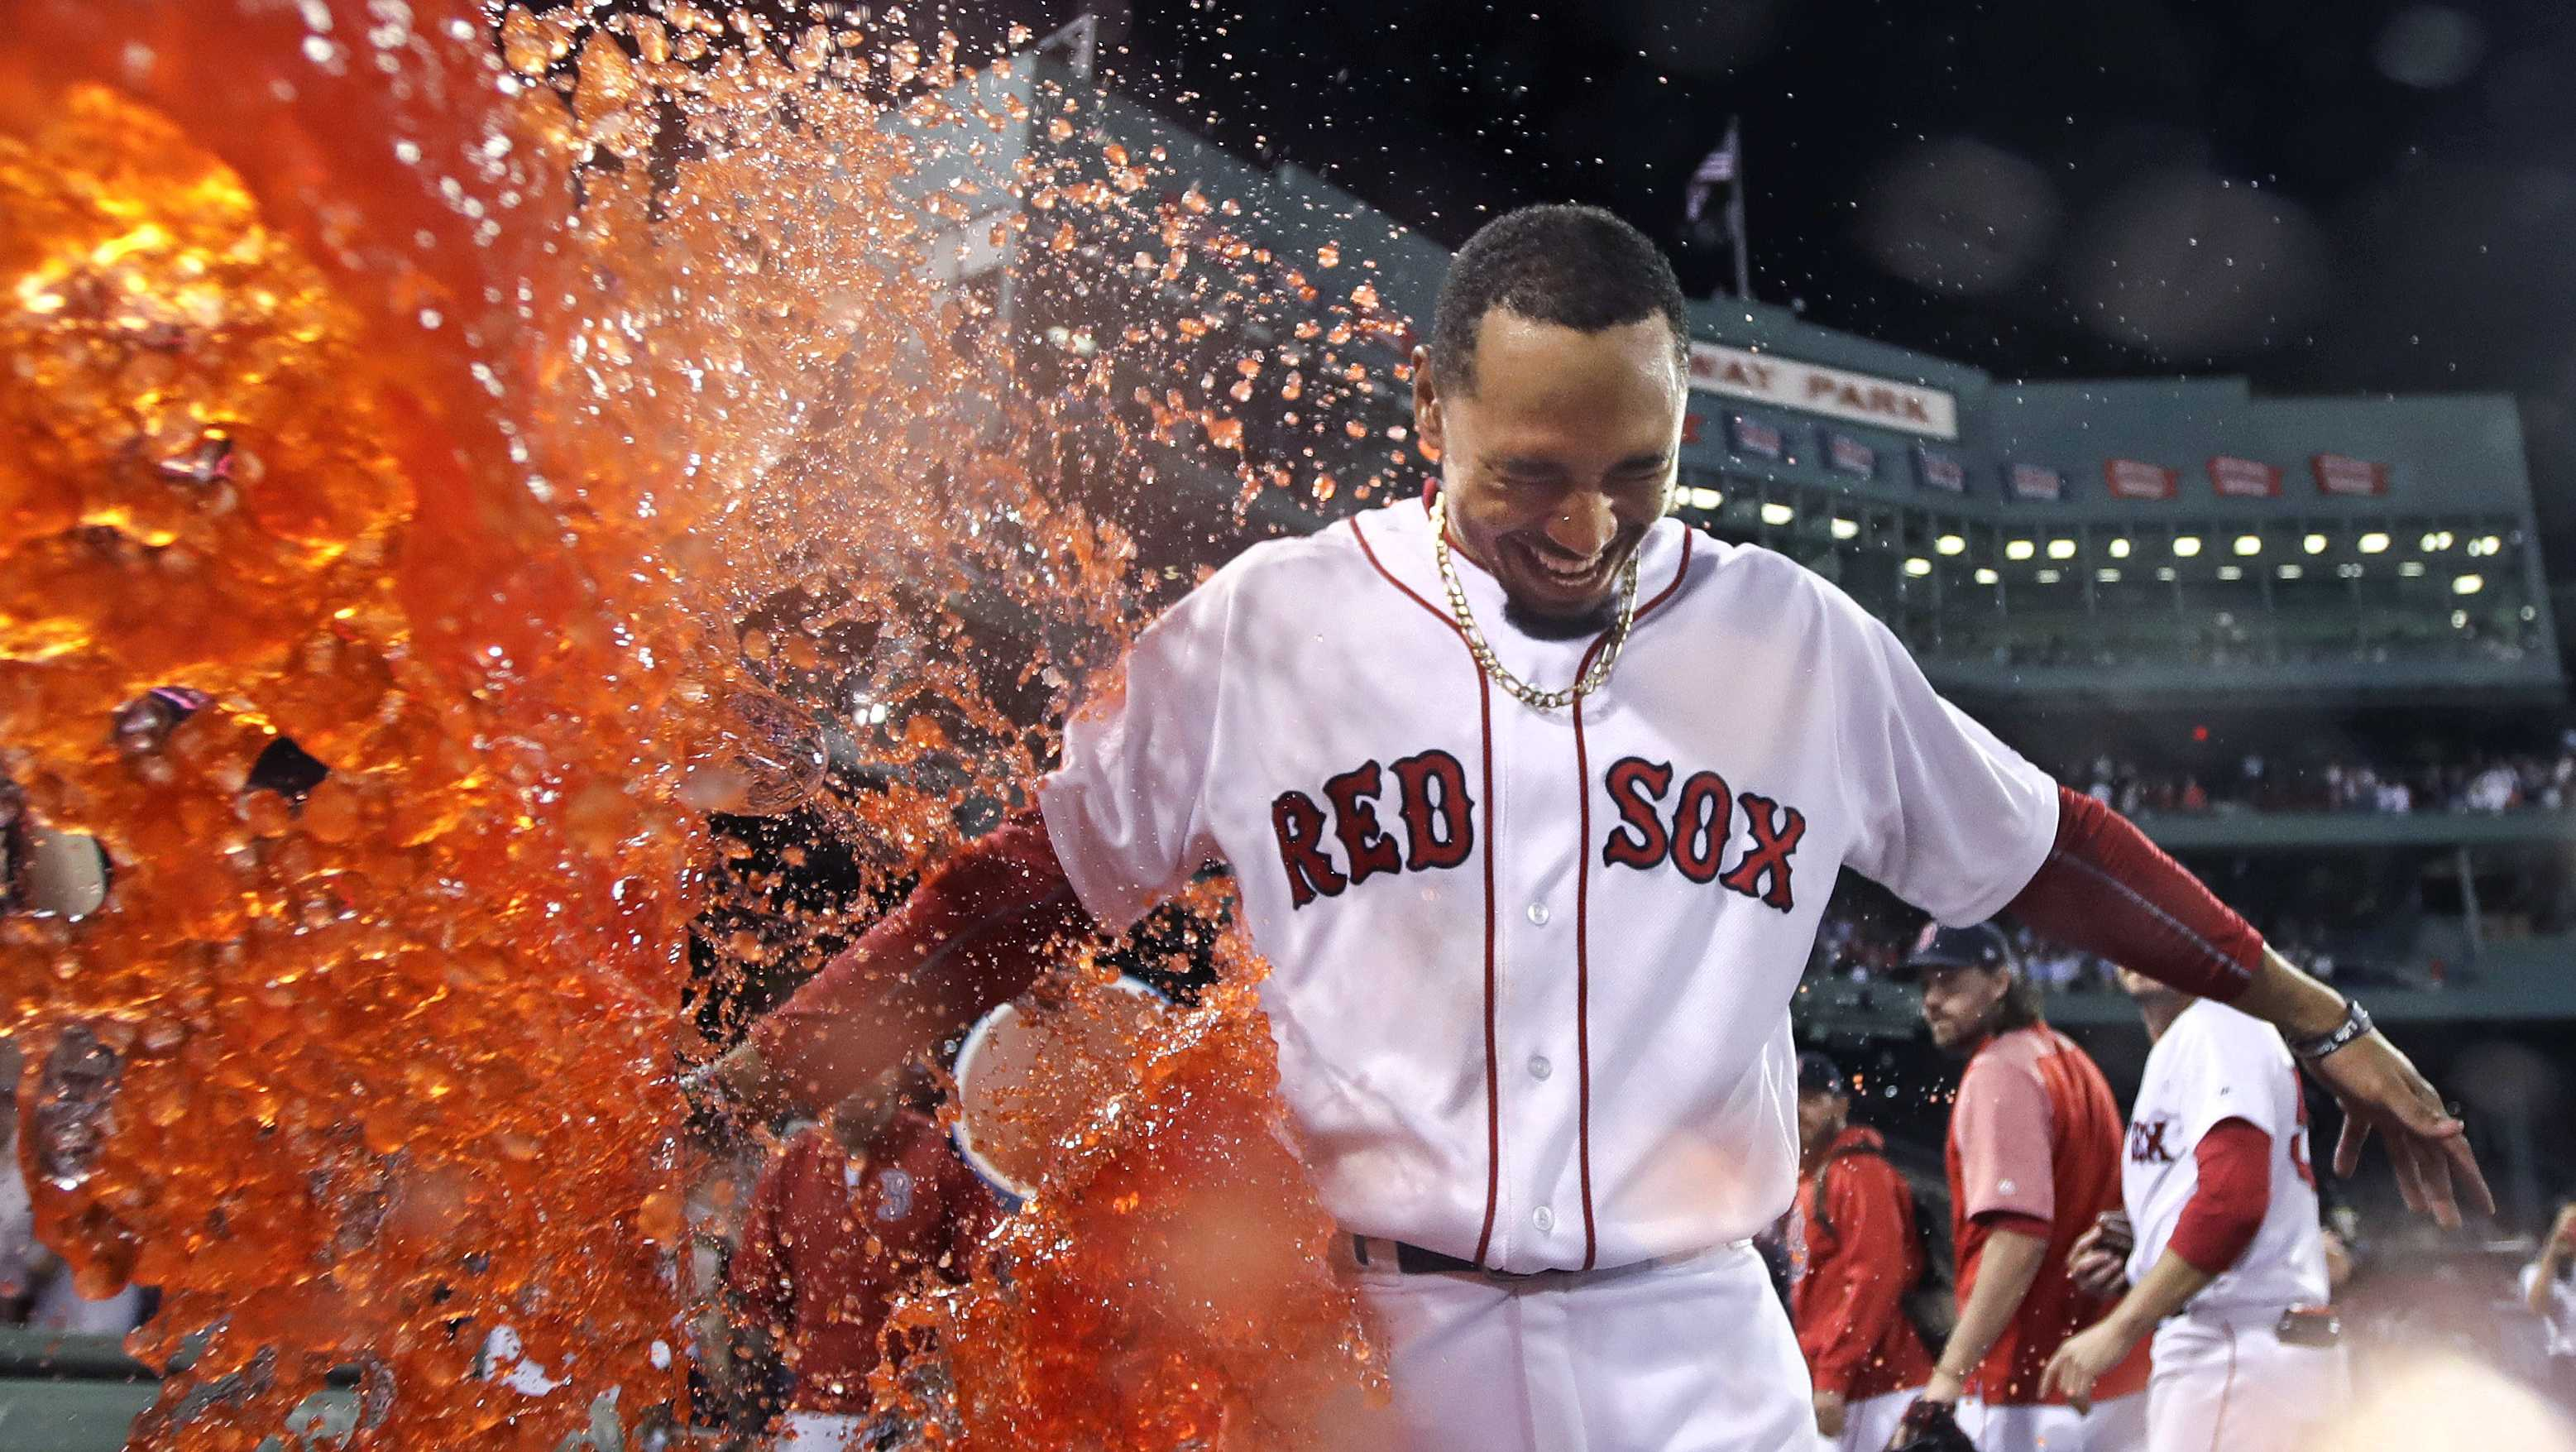 Boston Red Sox's Mookie Betts is doused after his walk-off two-run double during the ninth inning of a baseball game against the St. Louis Cardinals in Boston, Wednesday, Aug. 16, 2017. The Red Sox won 5-4.